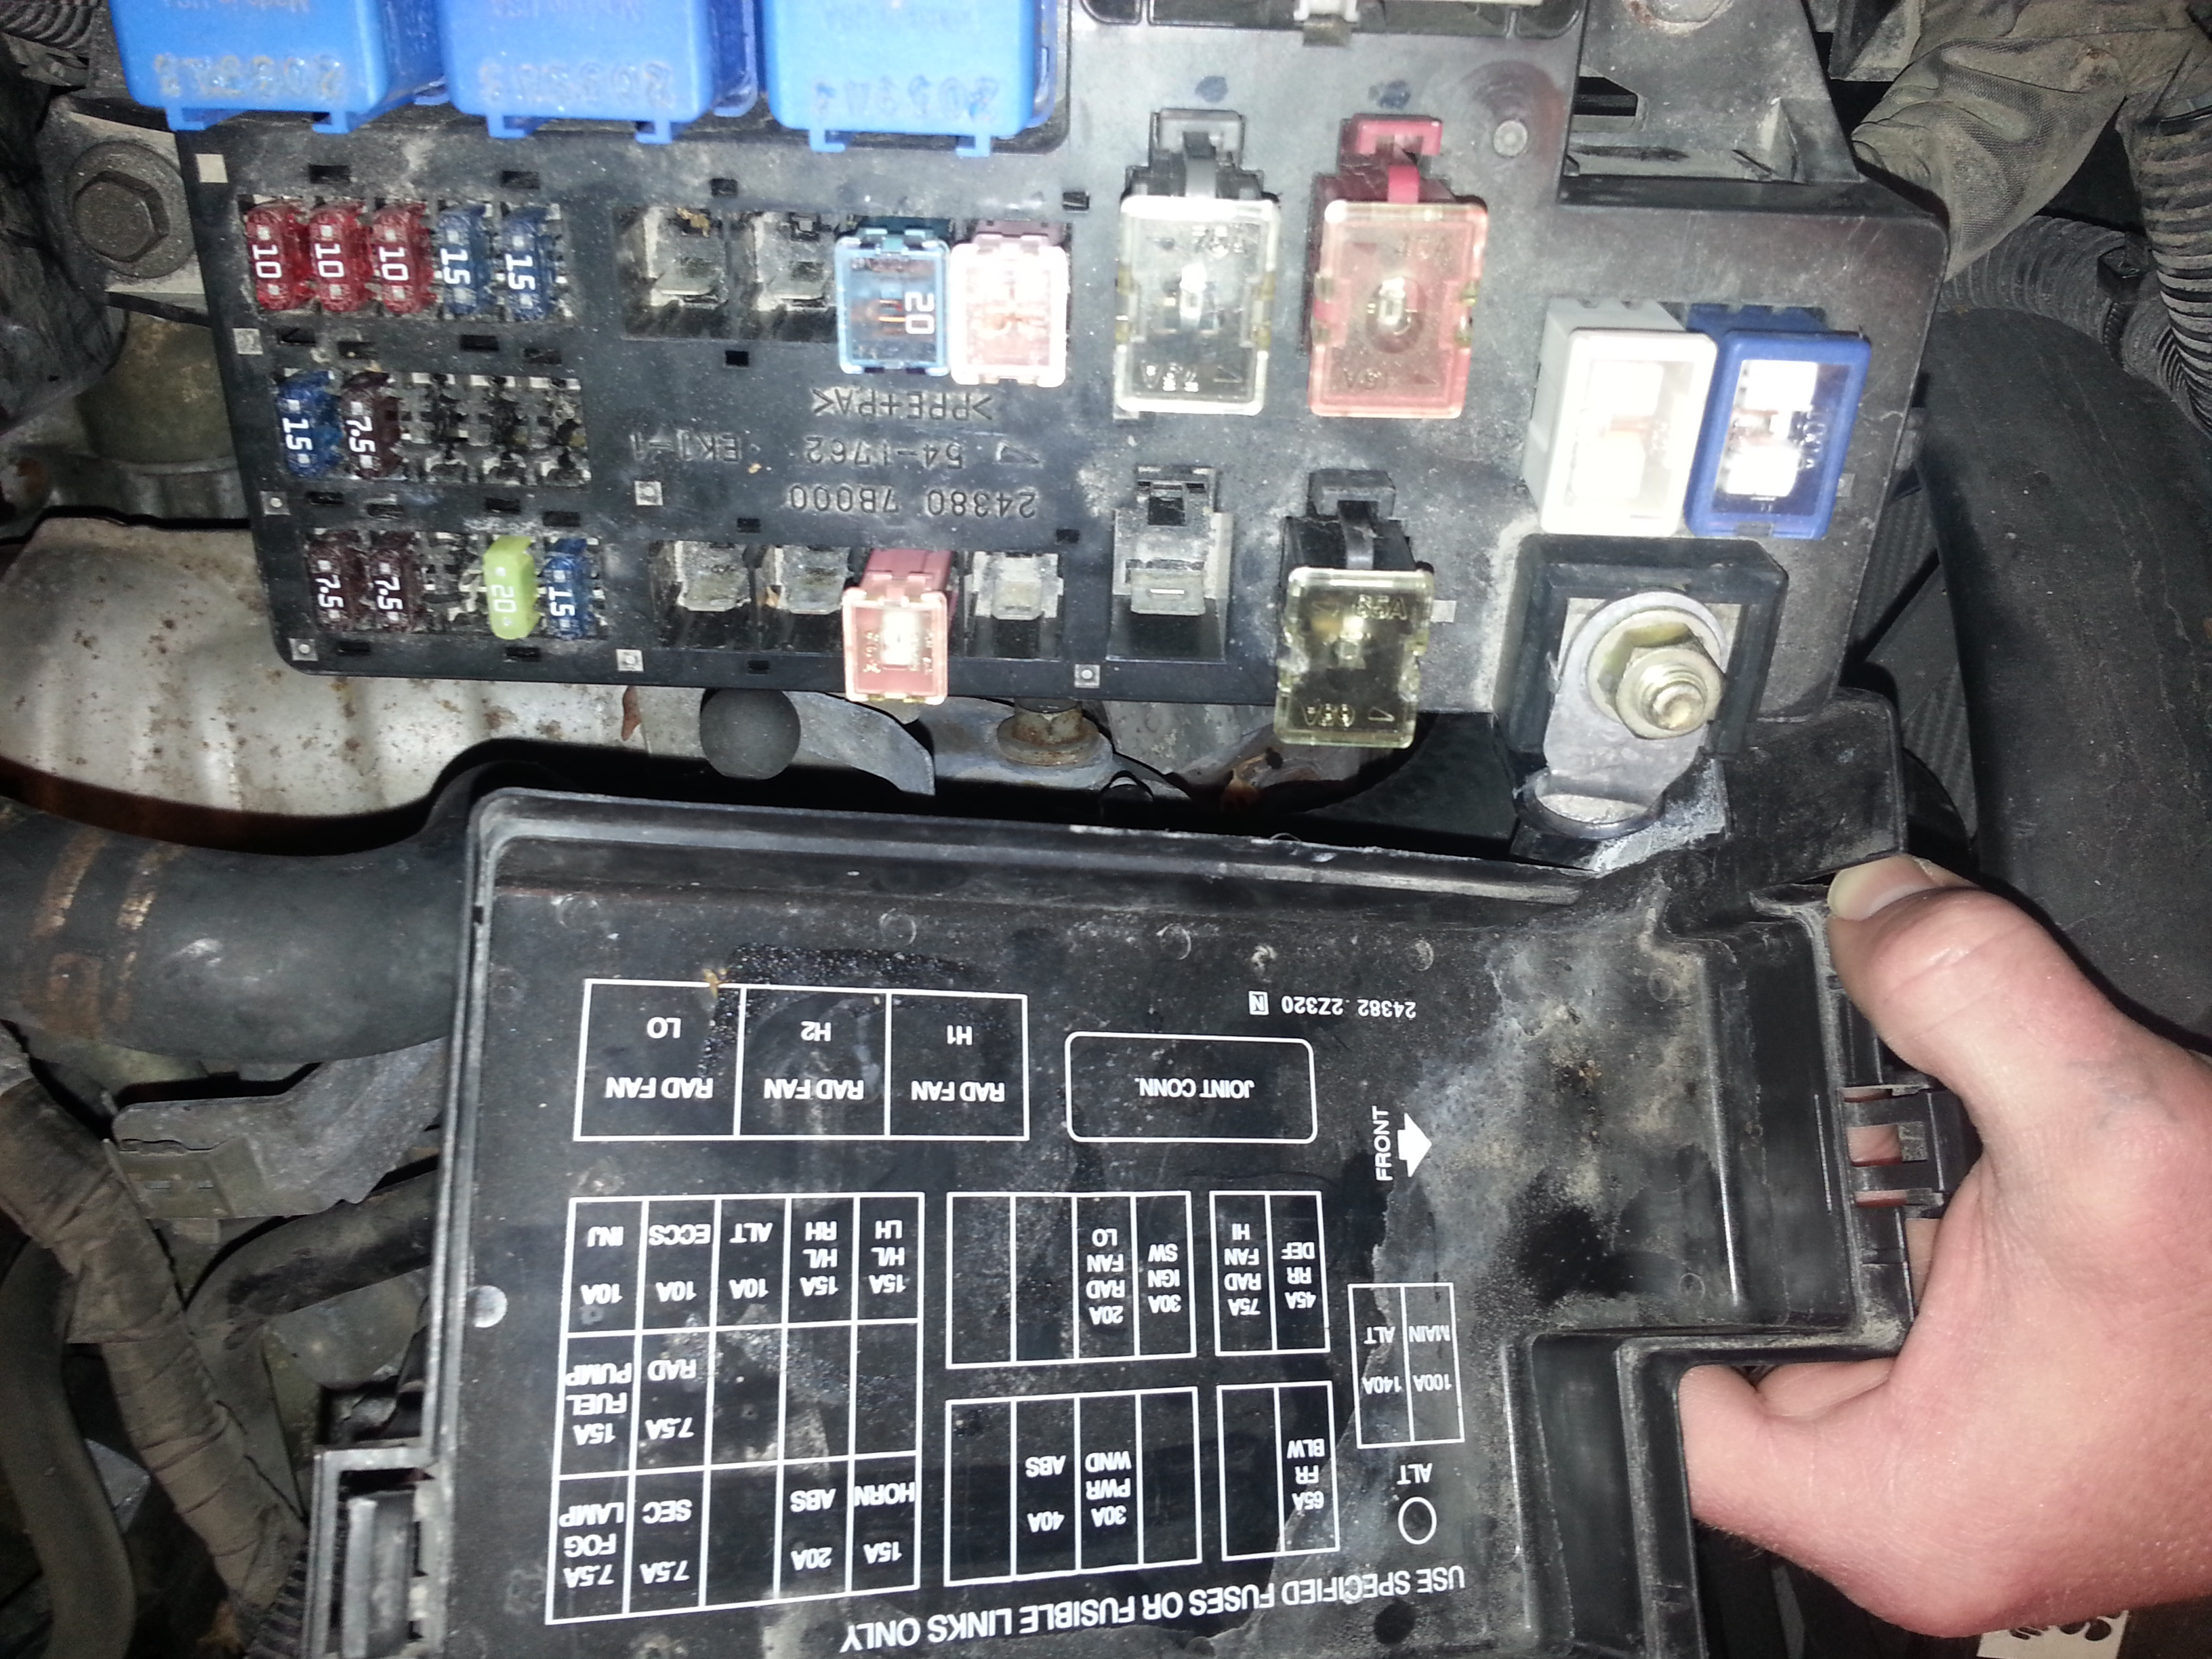 1996 Mercury Sable Fuse Panel For Download Wiring Diagrams 1999 Box Diagram Get Free Image About 93 2000